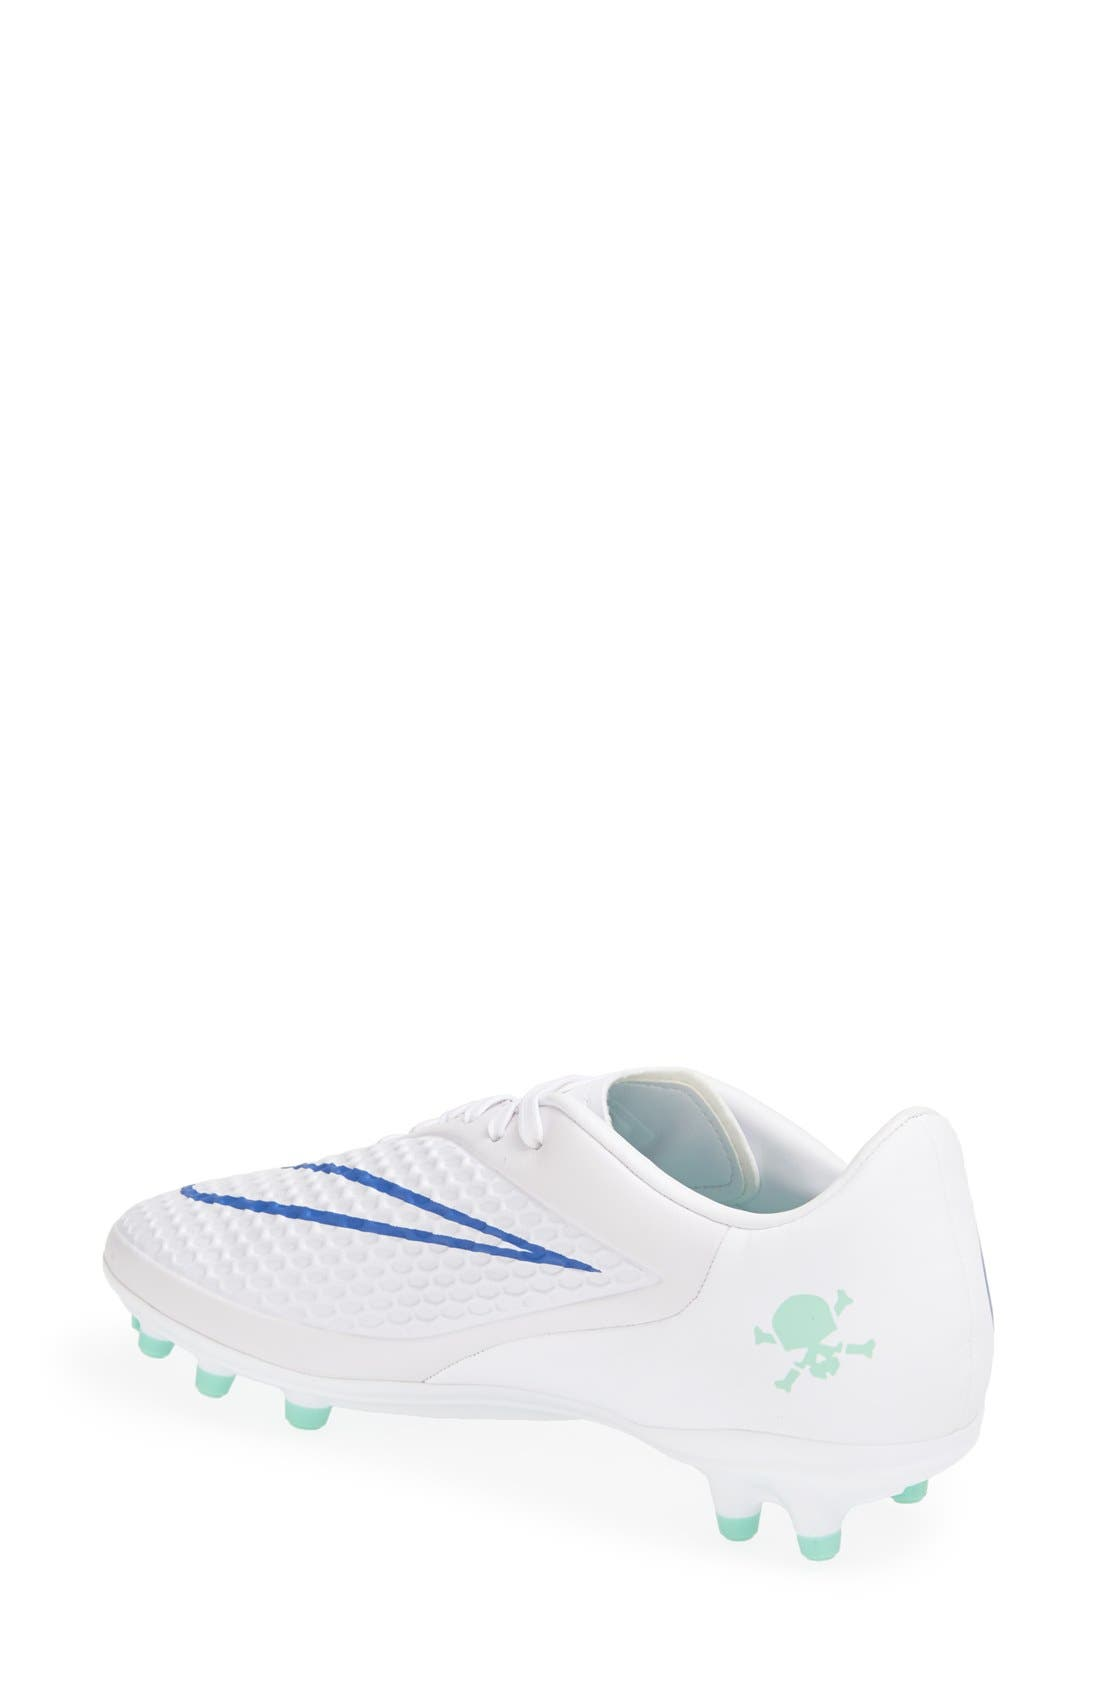 Alternate Image 2  - Nike 'Hypervenom Phelon' Firm Ground Soccer Cleat (Women)